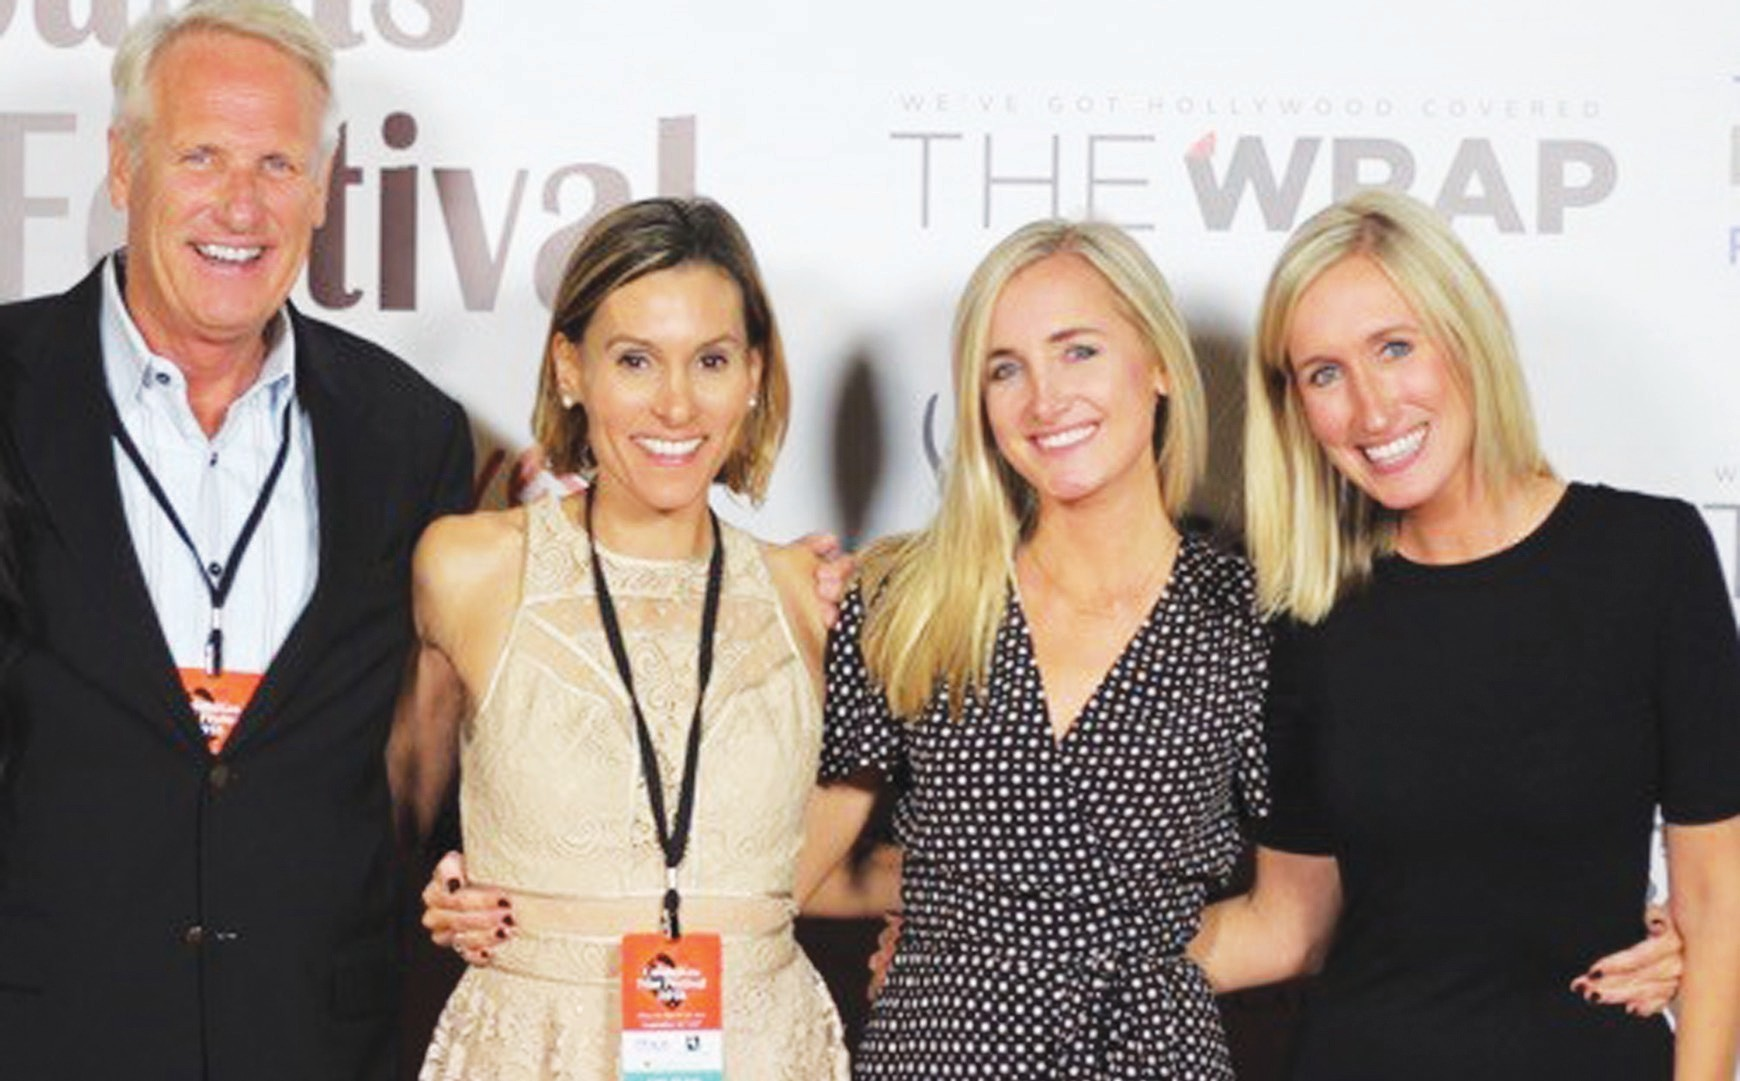 NOW APPEARING—At left isfilm producer Joe Fries and at right his two daughters, Kelly and Nicole Fries, the organizers of the Calabasas Film Festival, at last year's event. Courtesy of Calabasas Film Festival